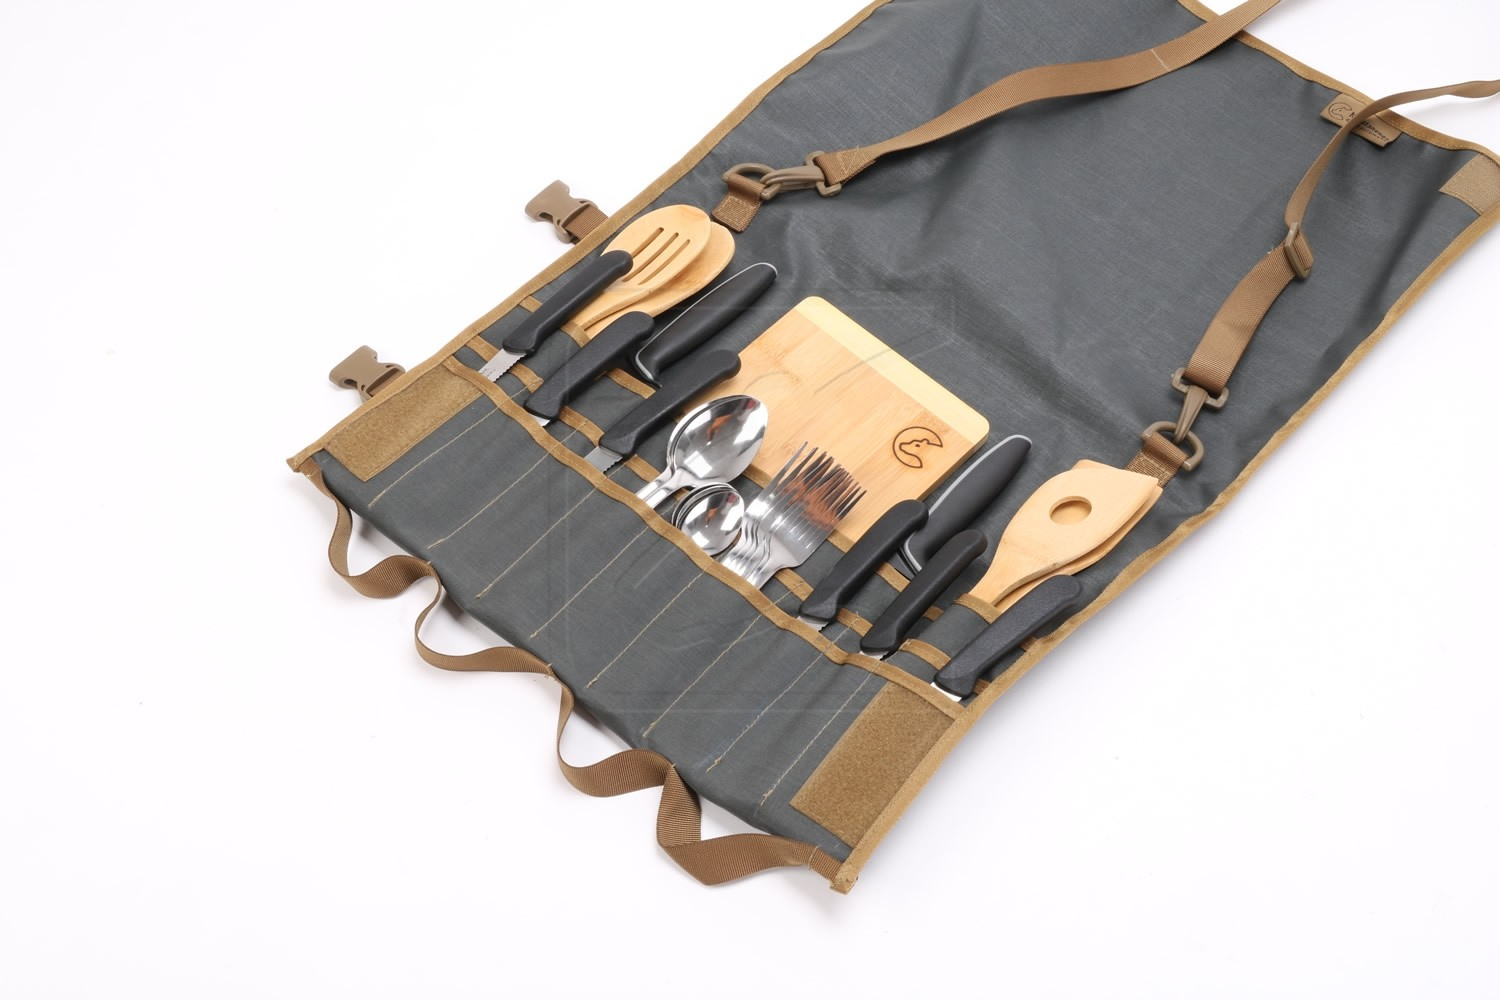 Tool Roll MAXI - Hungry Edition - incl stainless steel cutlery, Nakatanenga